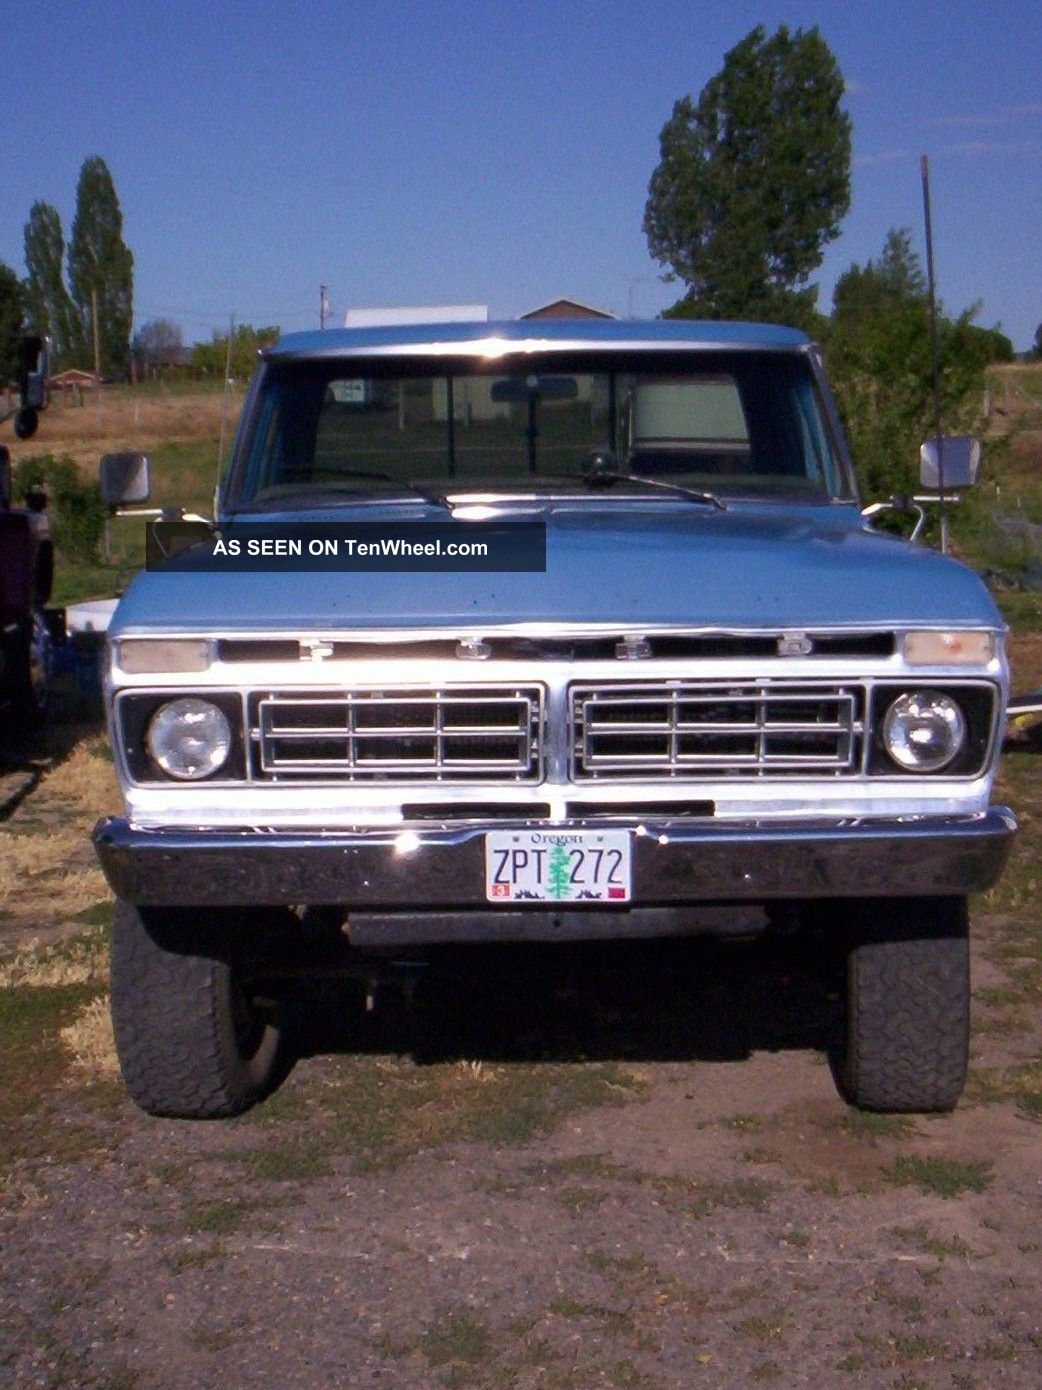 1977 f150 4x4 engine options autos weblog for Ford f150 motor options